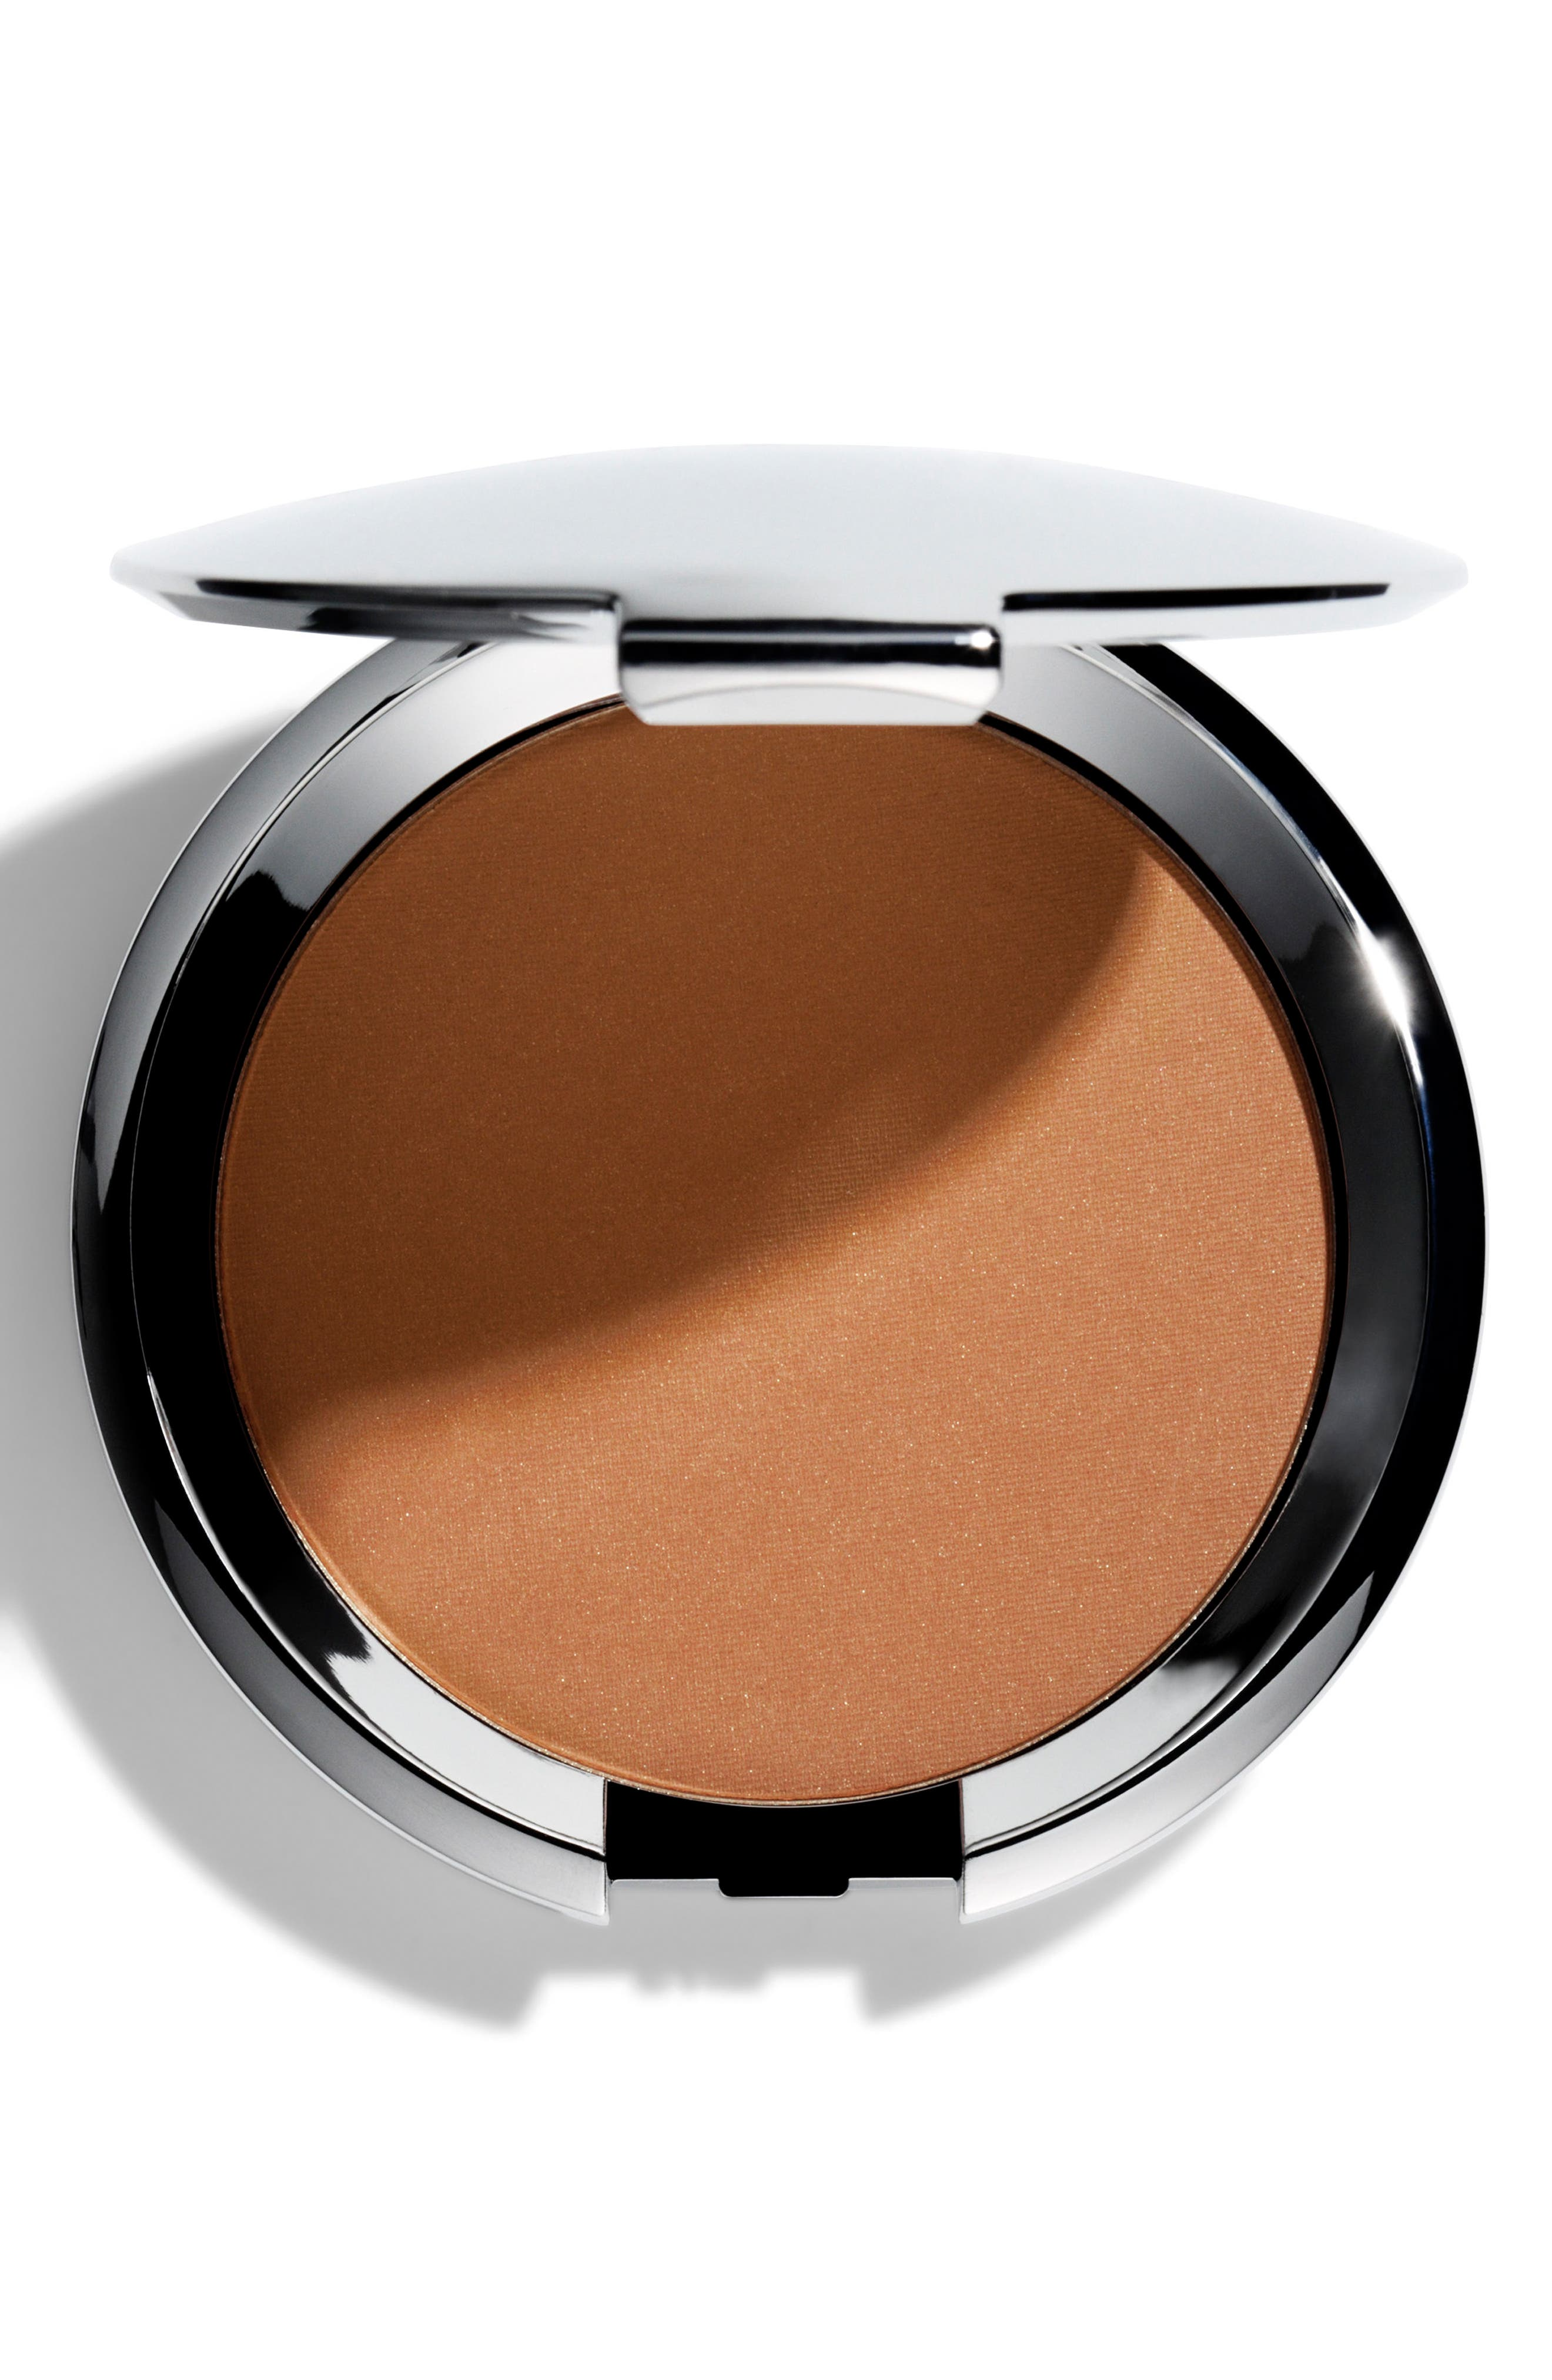 Main Image - Chantecaille Compact Soleil Bronzer